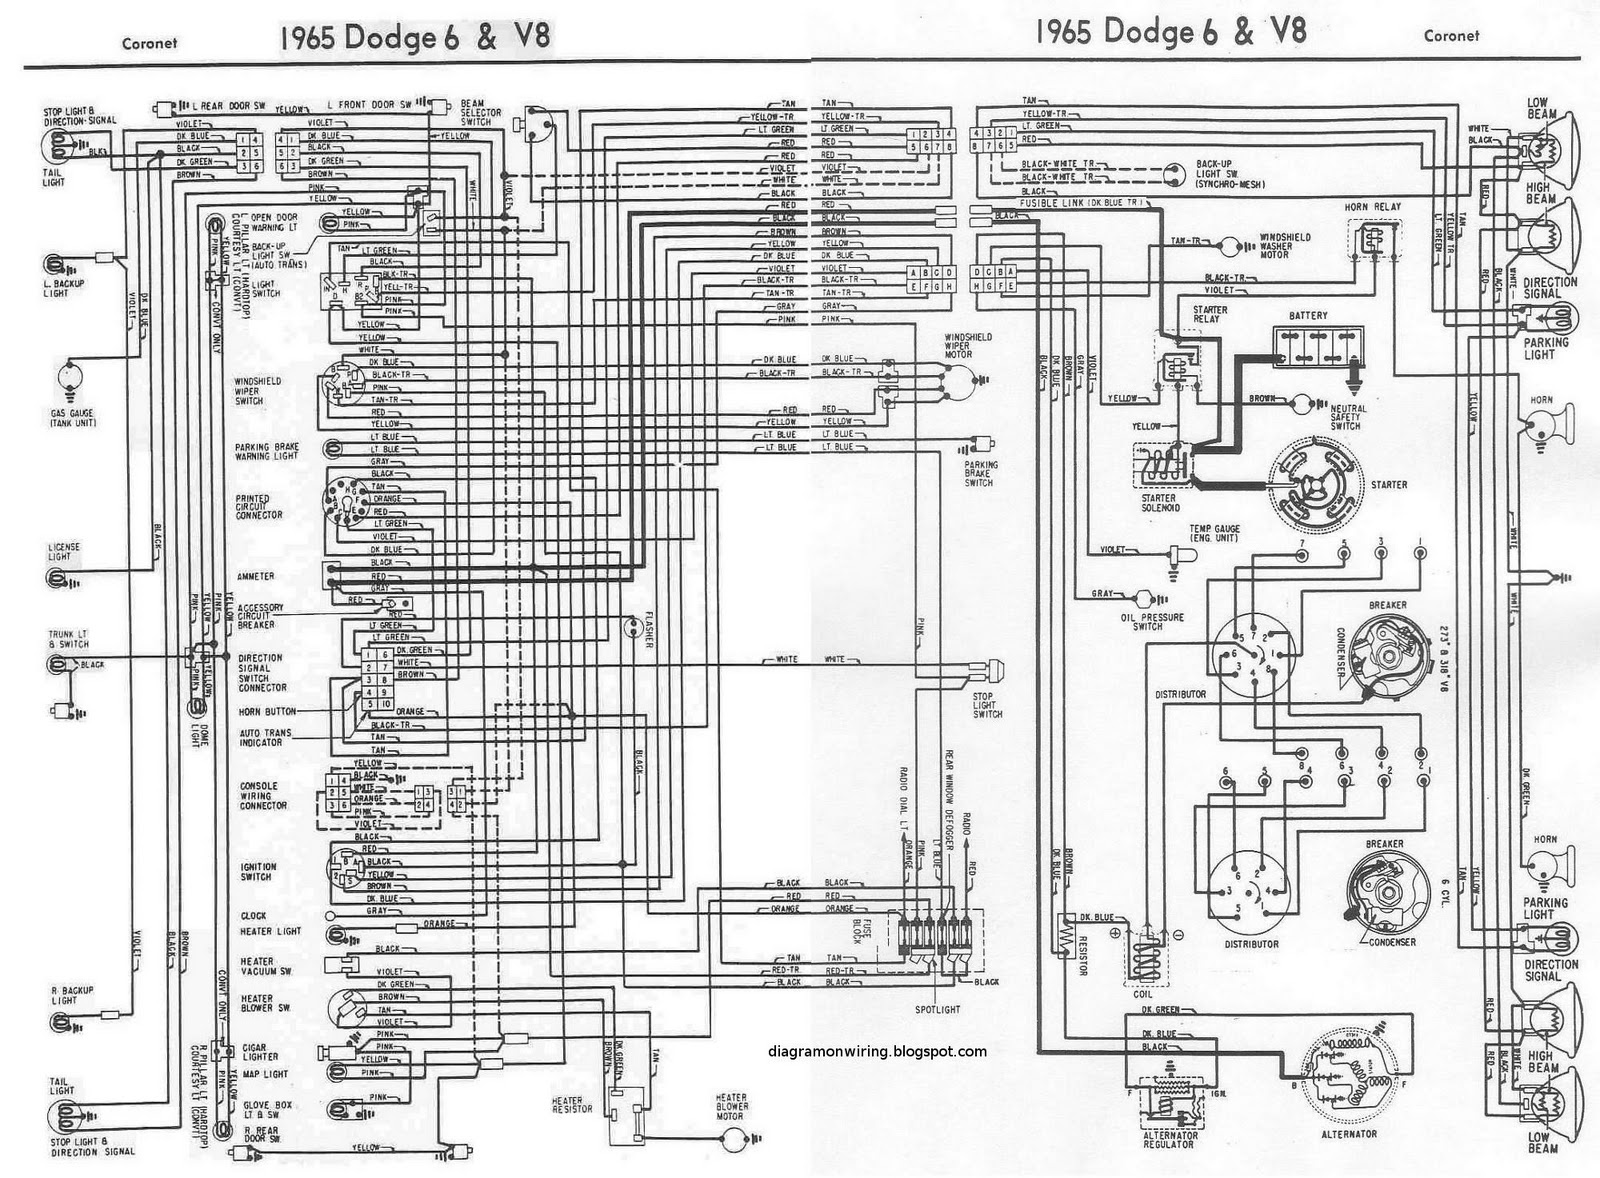 dodge demon wiring diagrams library of wiring diagrams u ti com jpg 1600x1178 plymouth duster headlight [ 1600 x 1178 Pixel ]